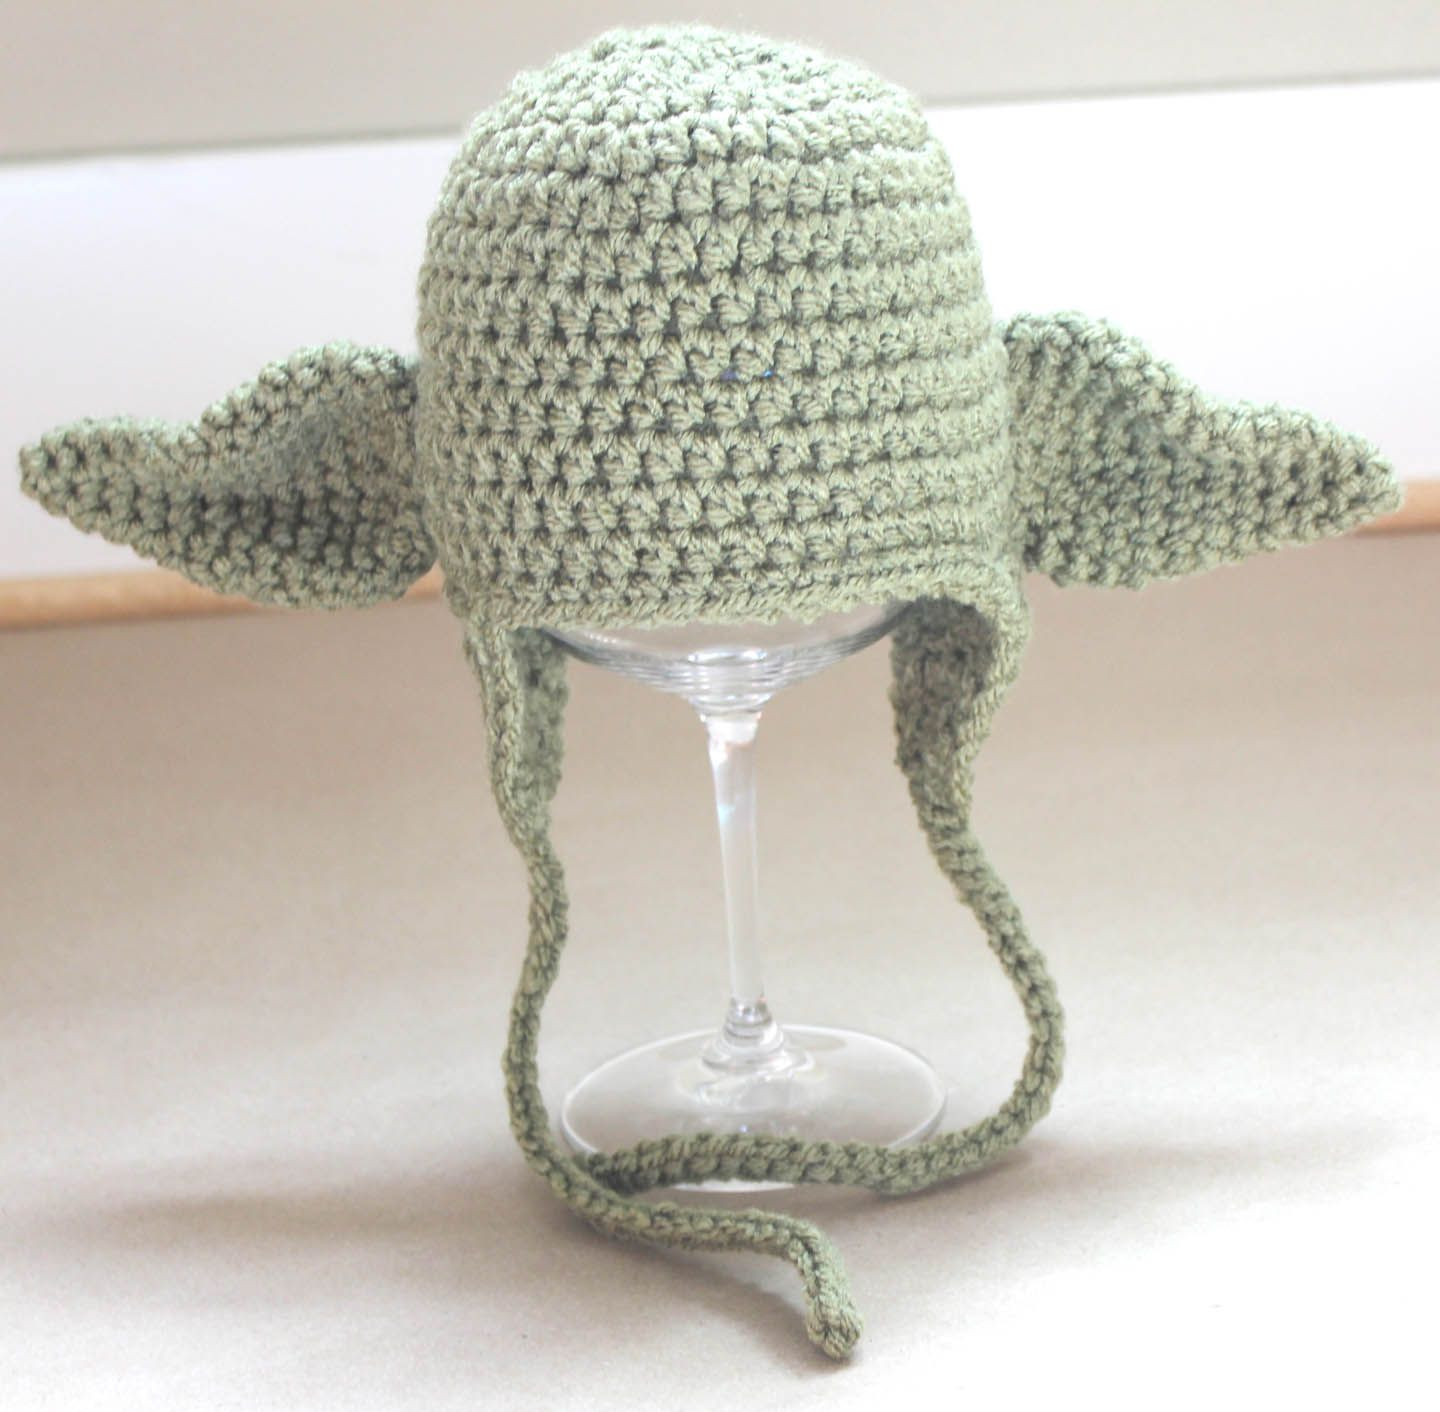 Crochet Yoda Hat | Free crochet, Crochet and Patterns